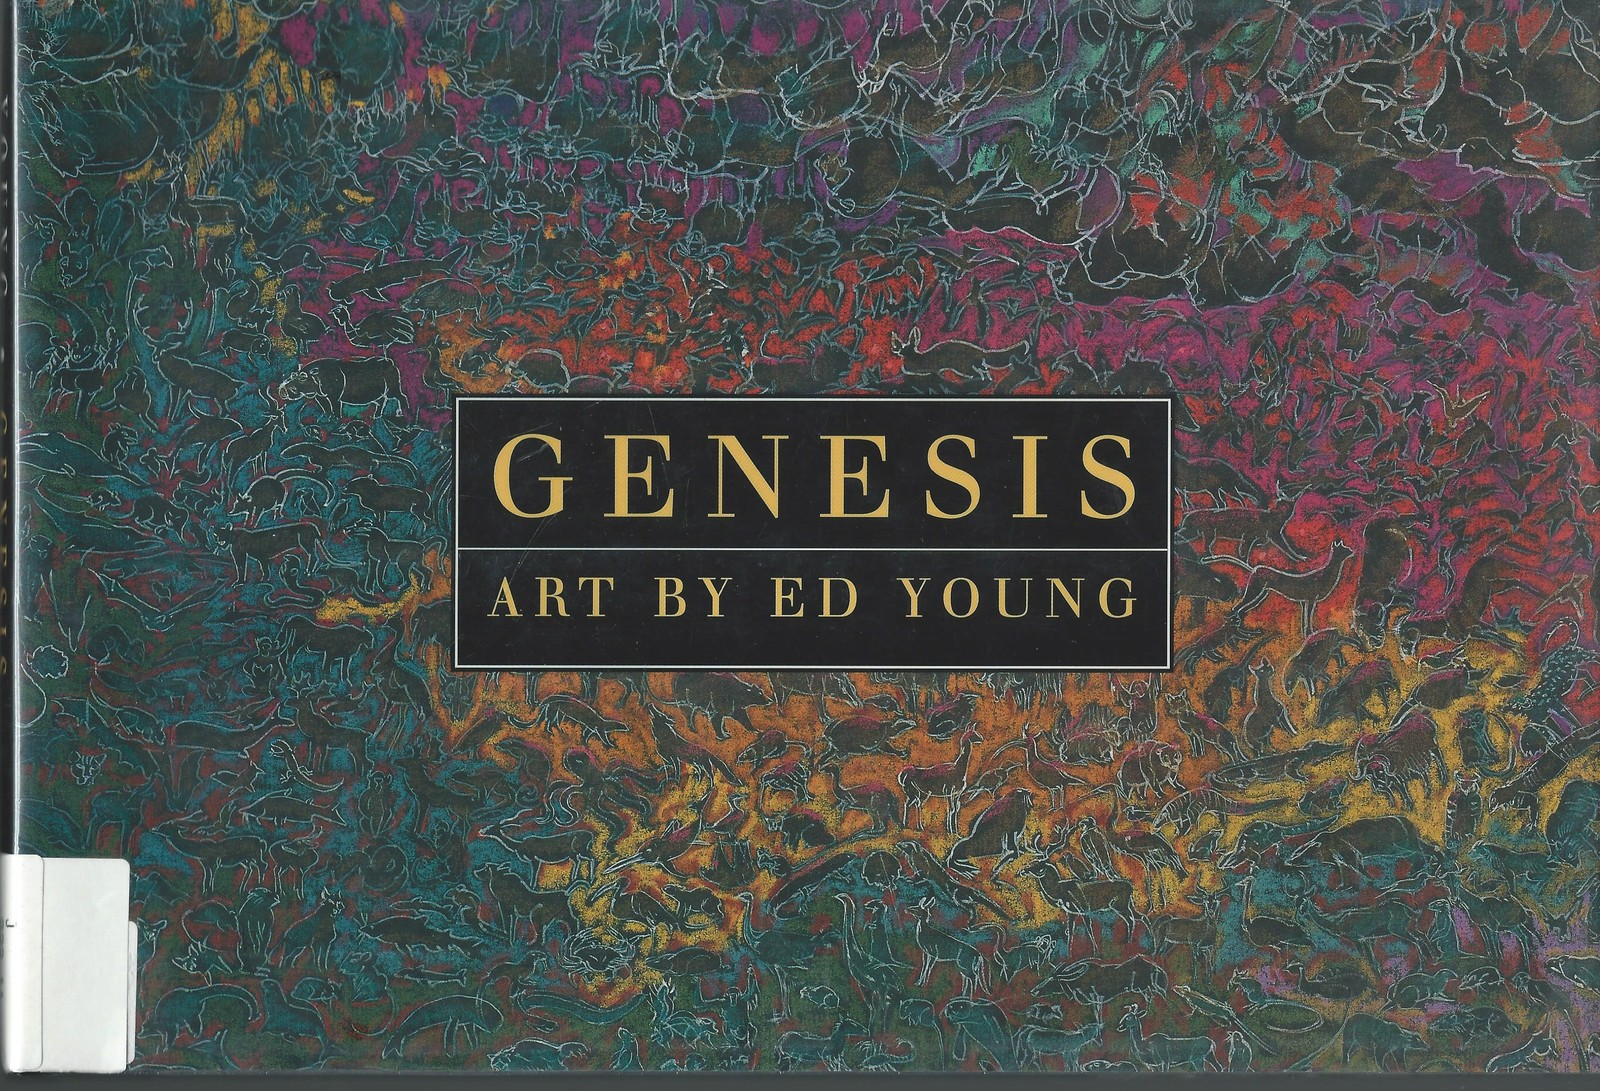 Genesis-BIBLICAL CREATION ART by ED YOUNG;Adapted from King James Version;1997HC